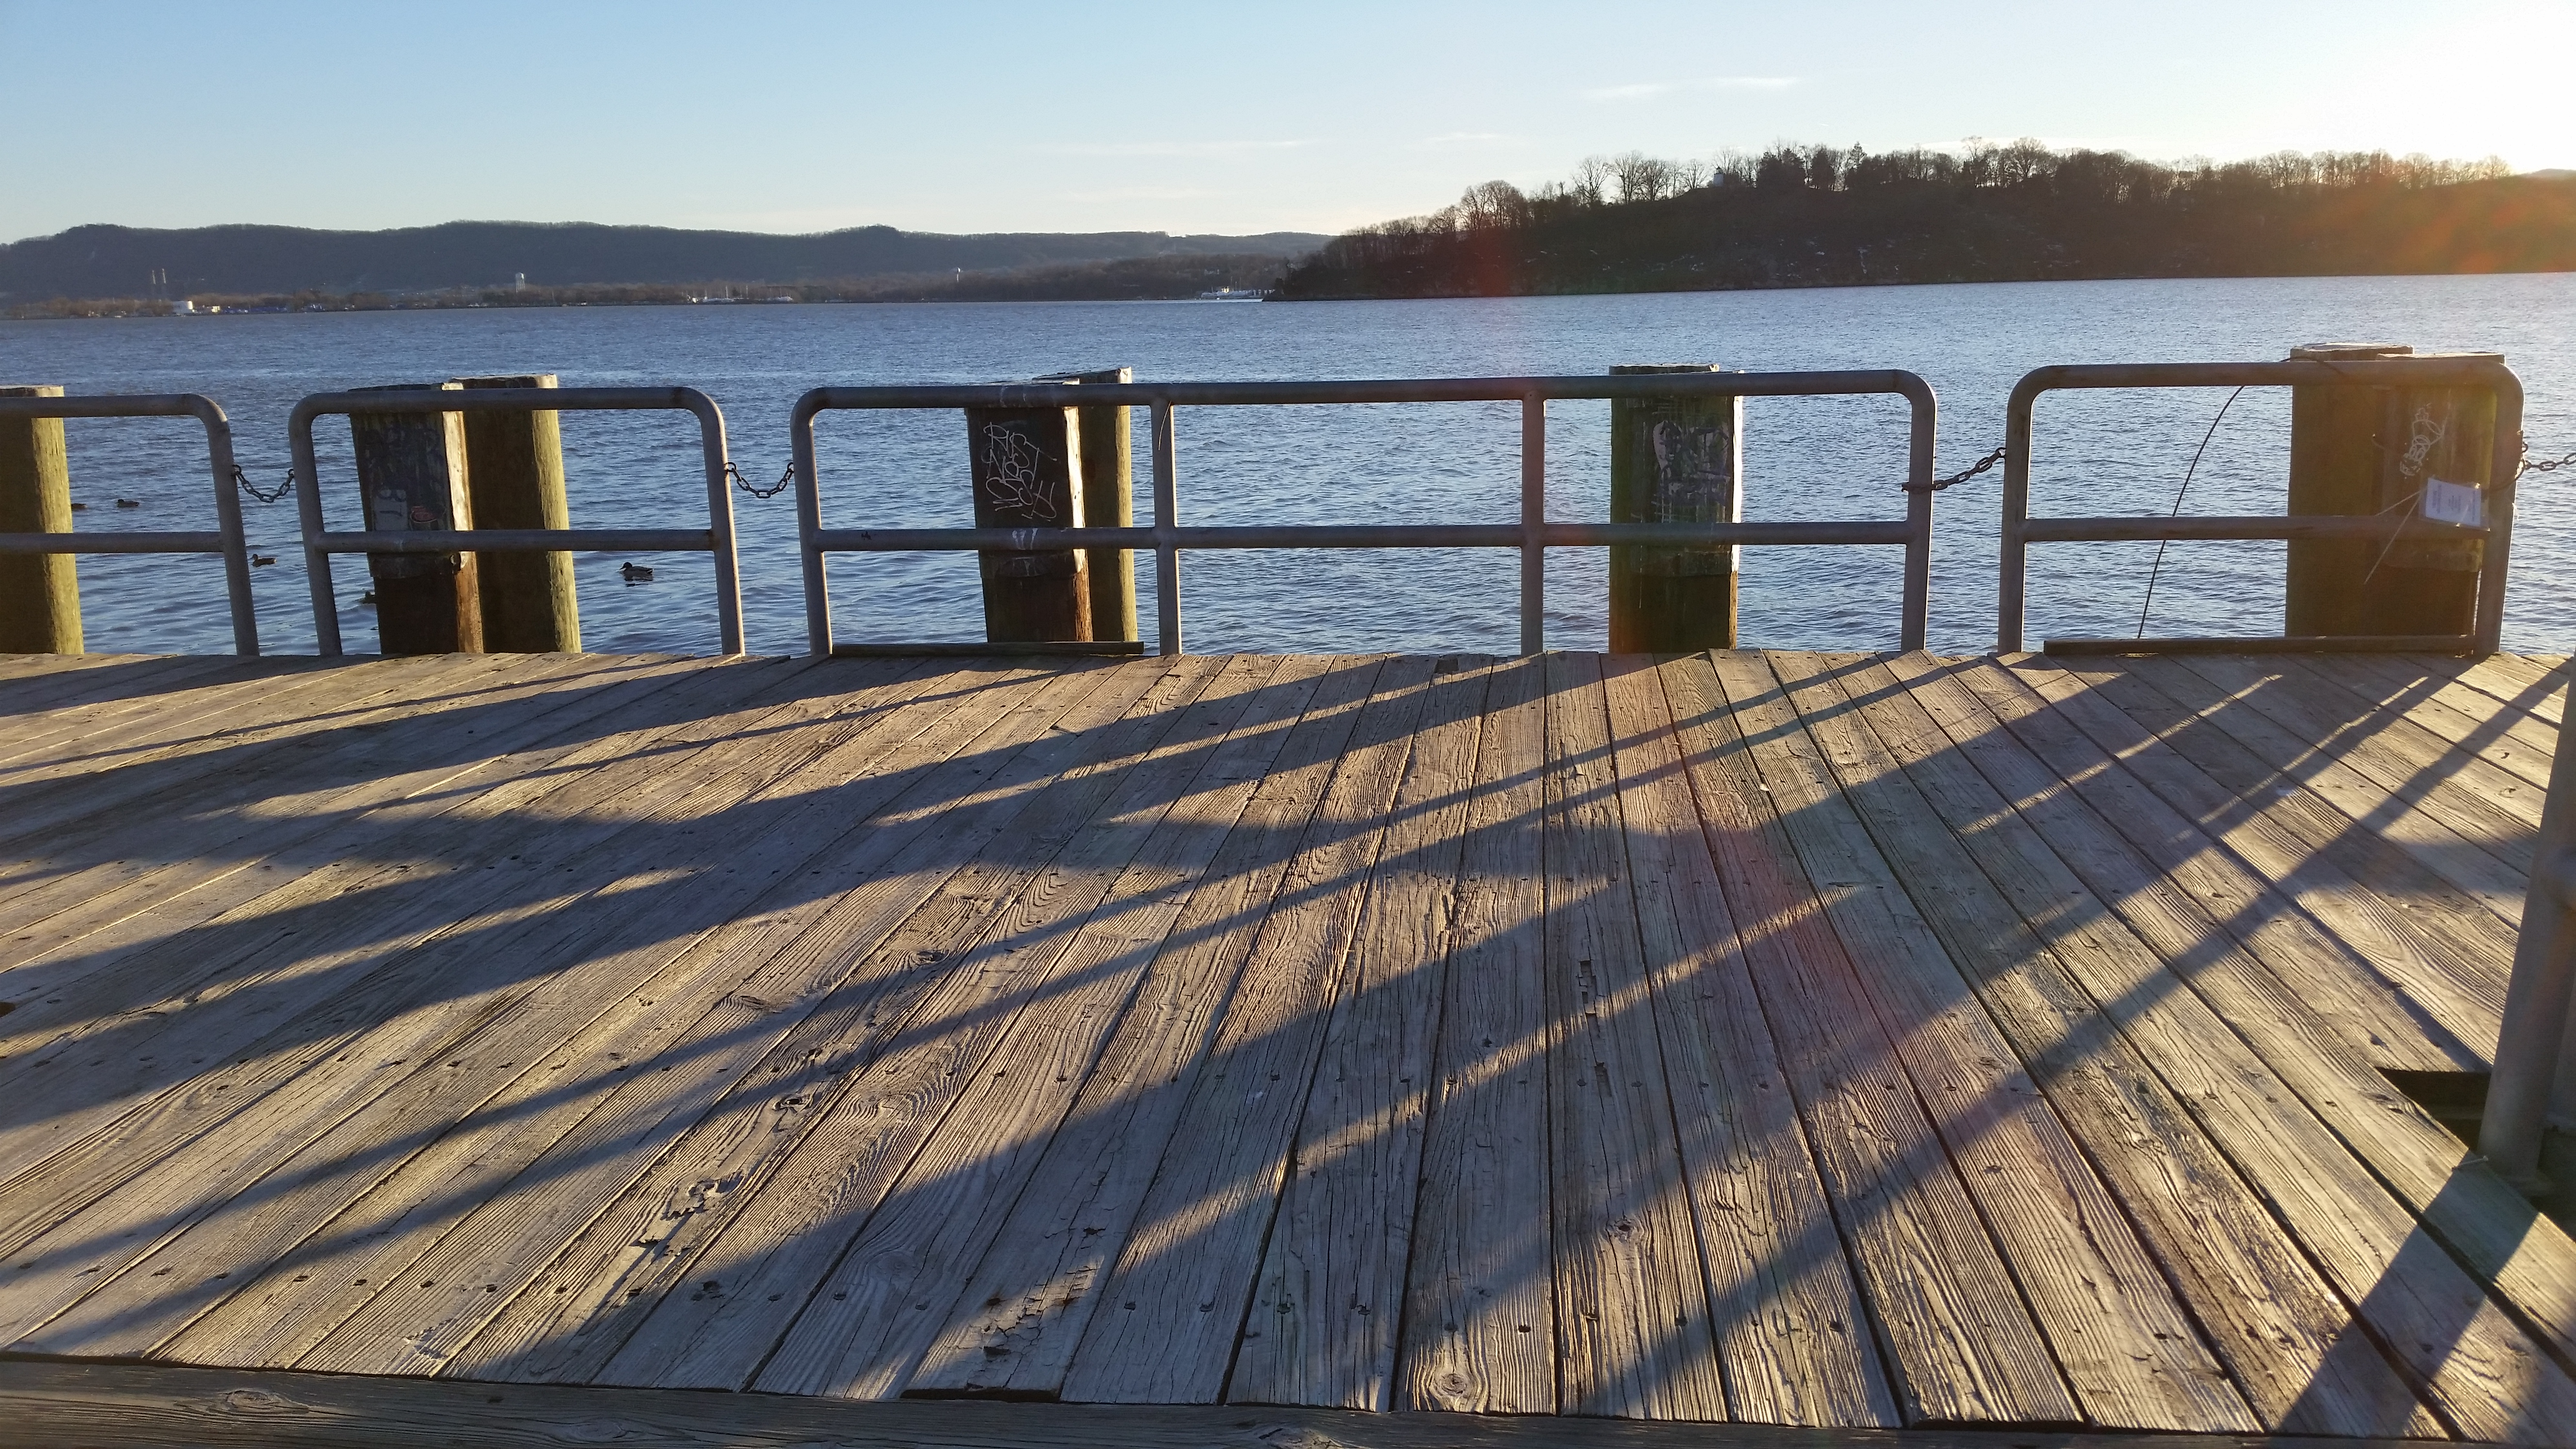 Dock Shadows